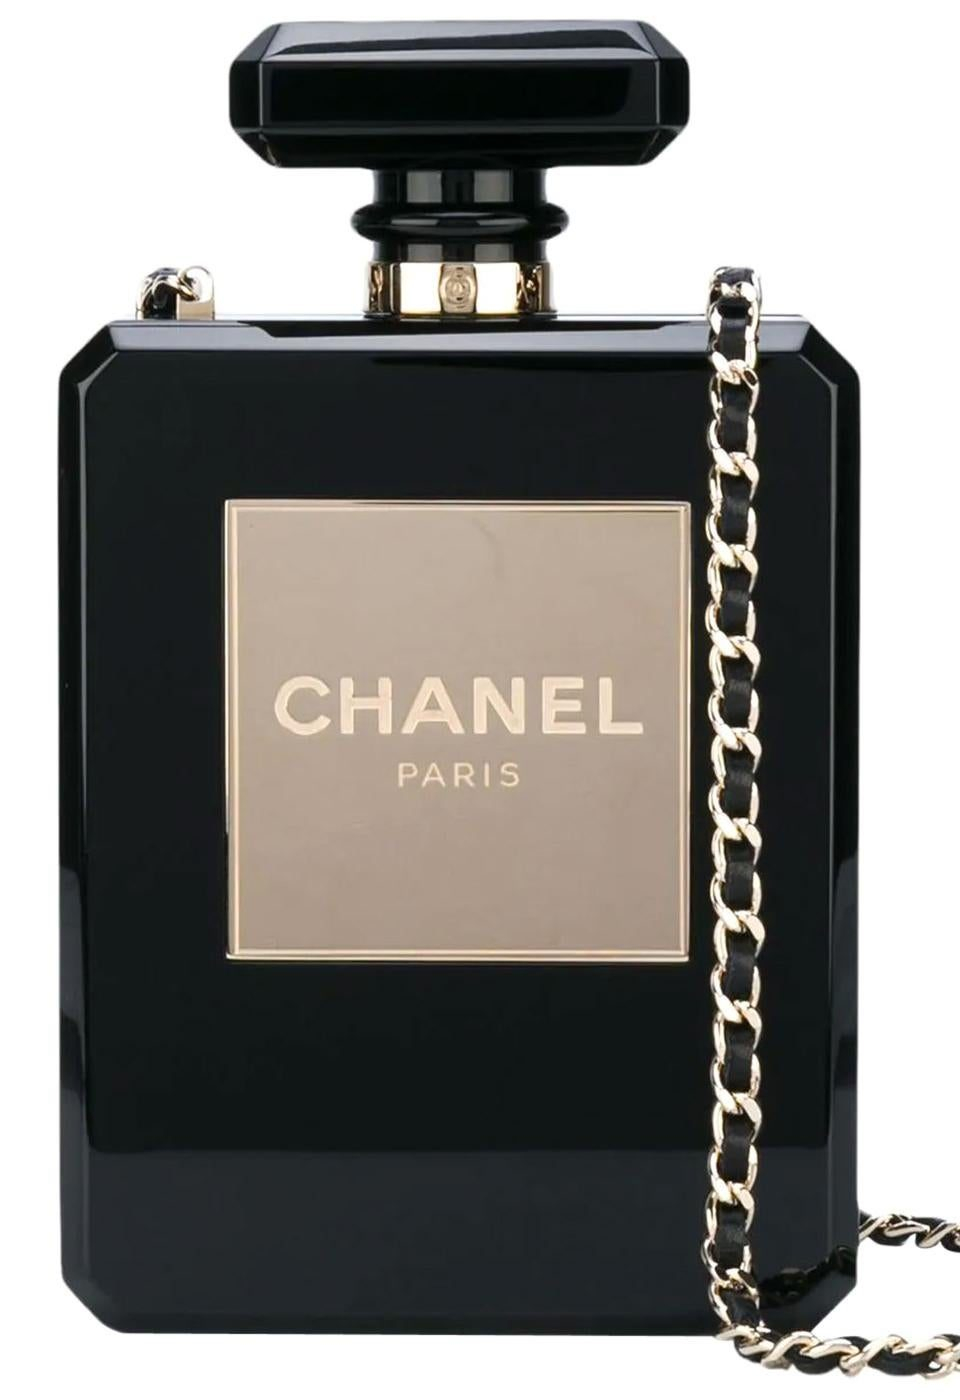 Impossible-to-Find Chanel Handbags Are House of Carver's Stock-in-Trade